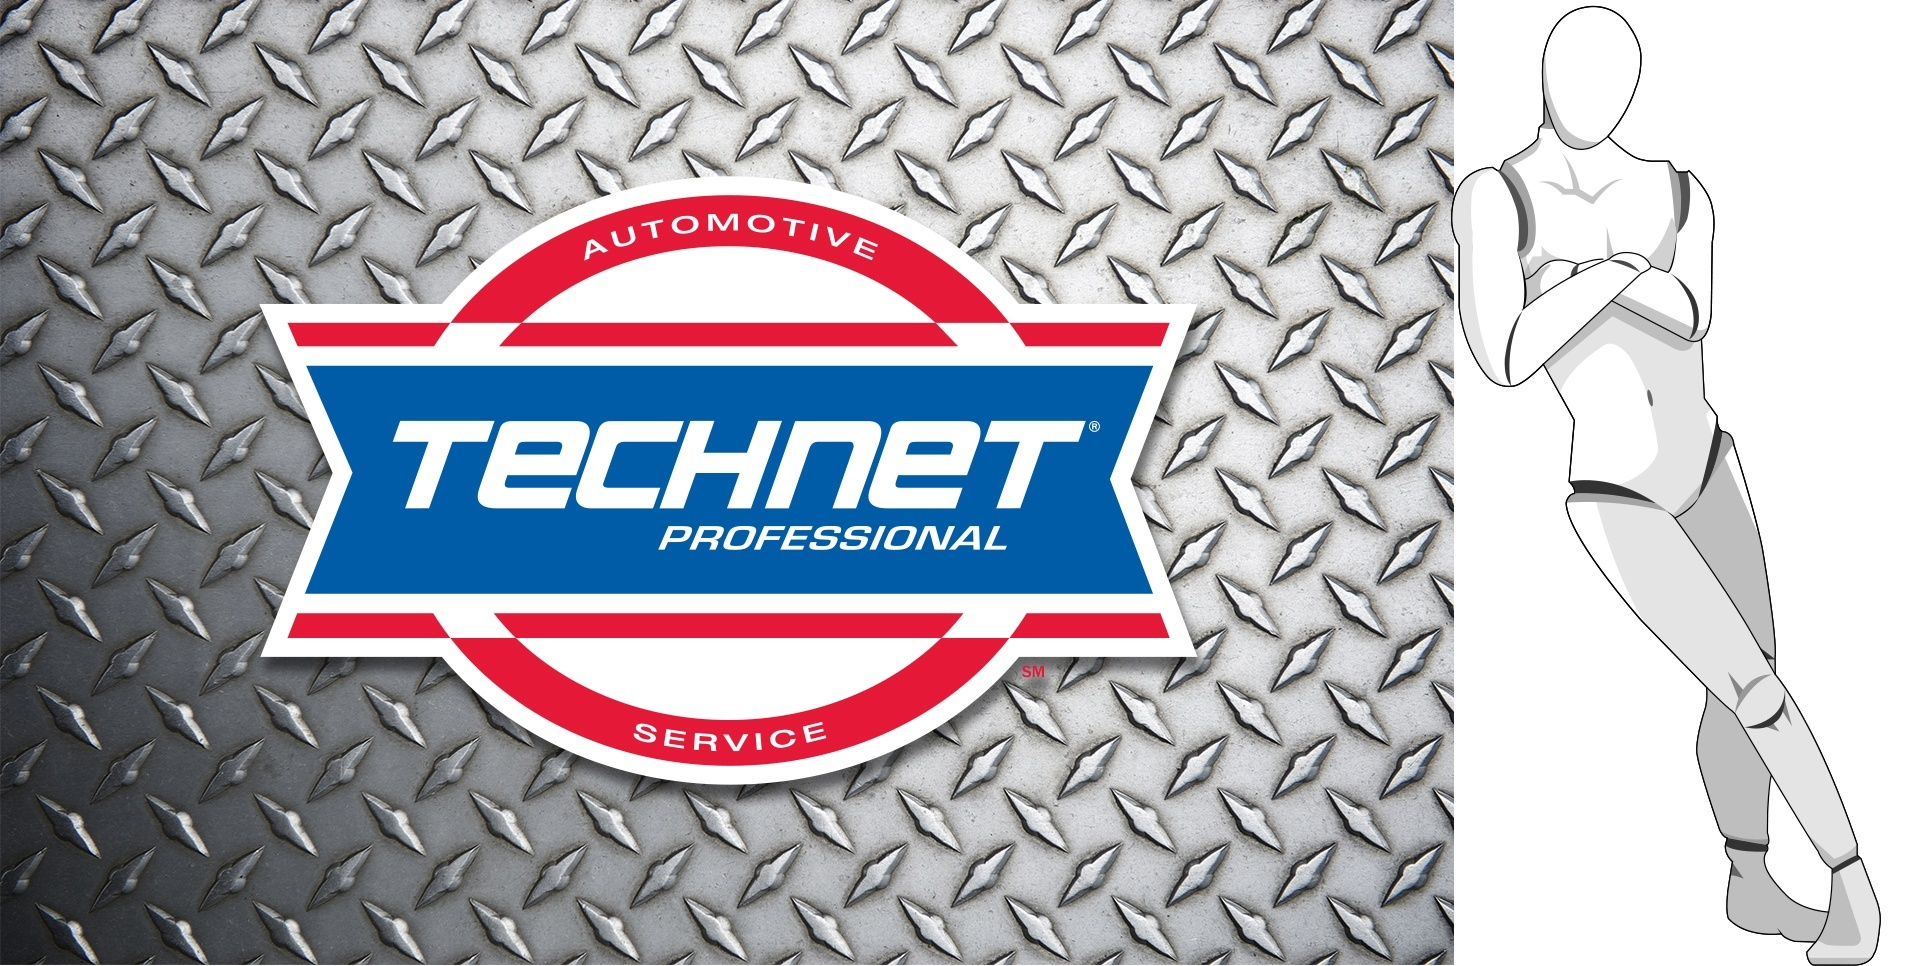 BOLT ON TECHNOLOGY Announces Partnership with TECHNET Professional Automotive Service